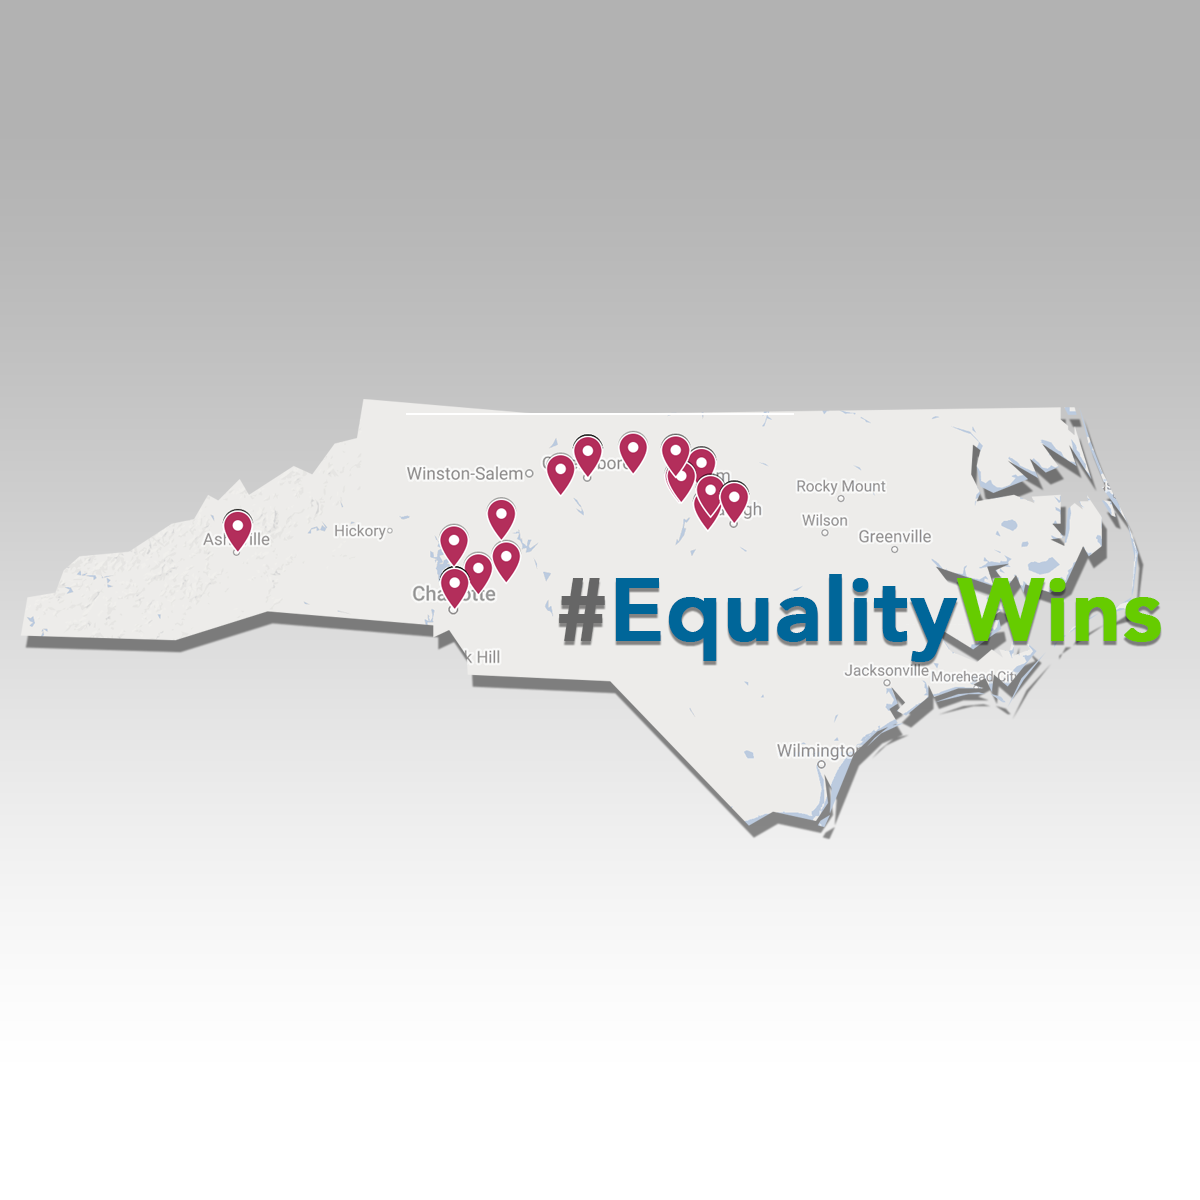 Pro-Equality Candidates Win Municipal Races Across North Carolina